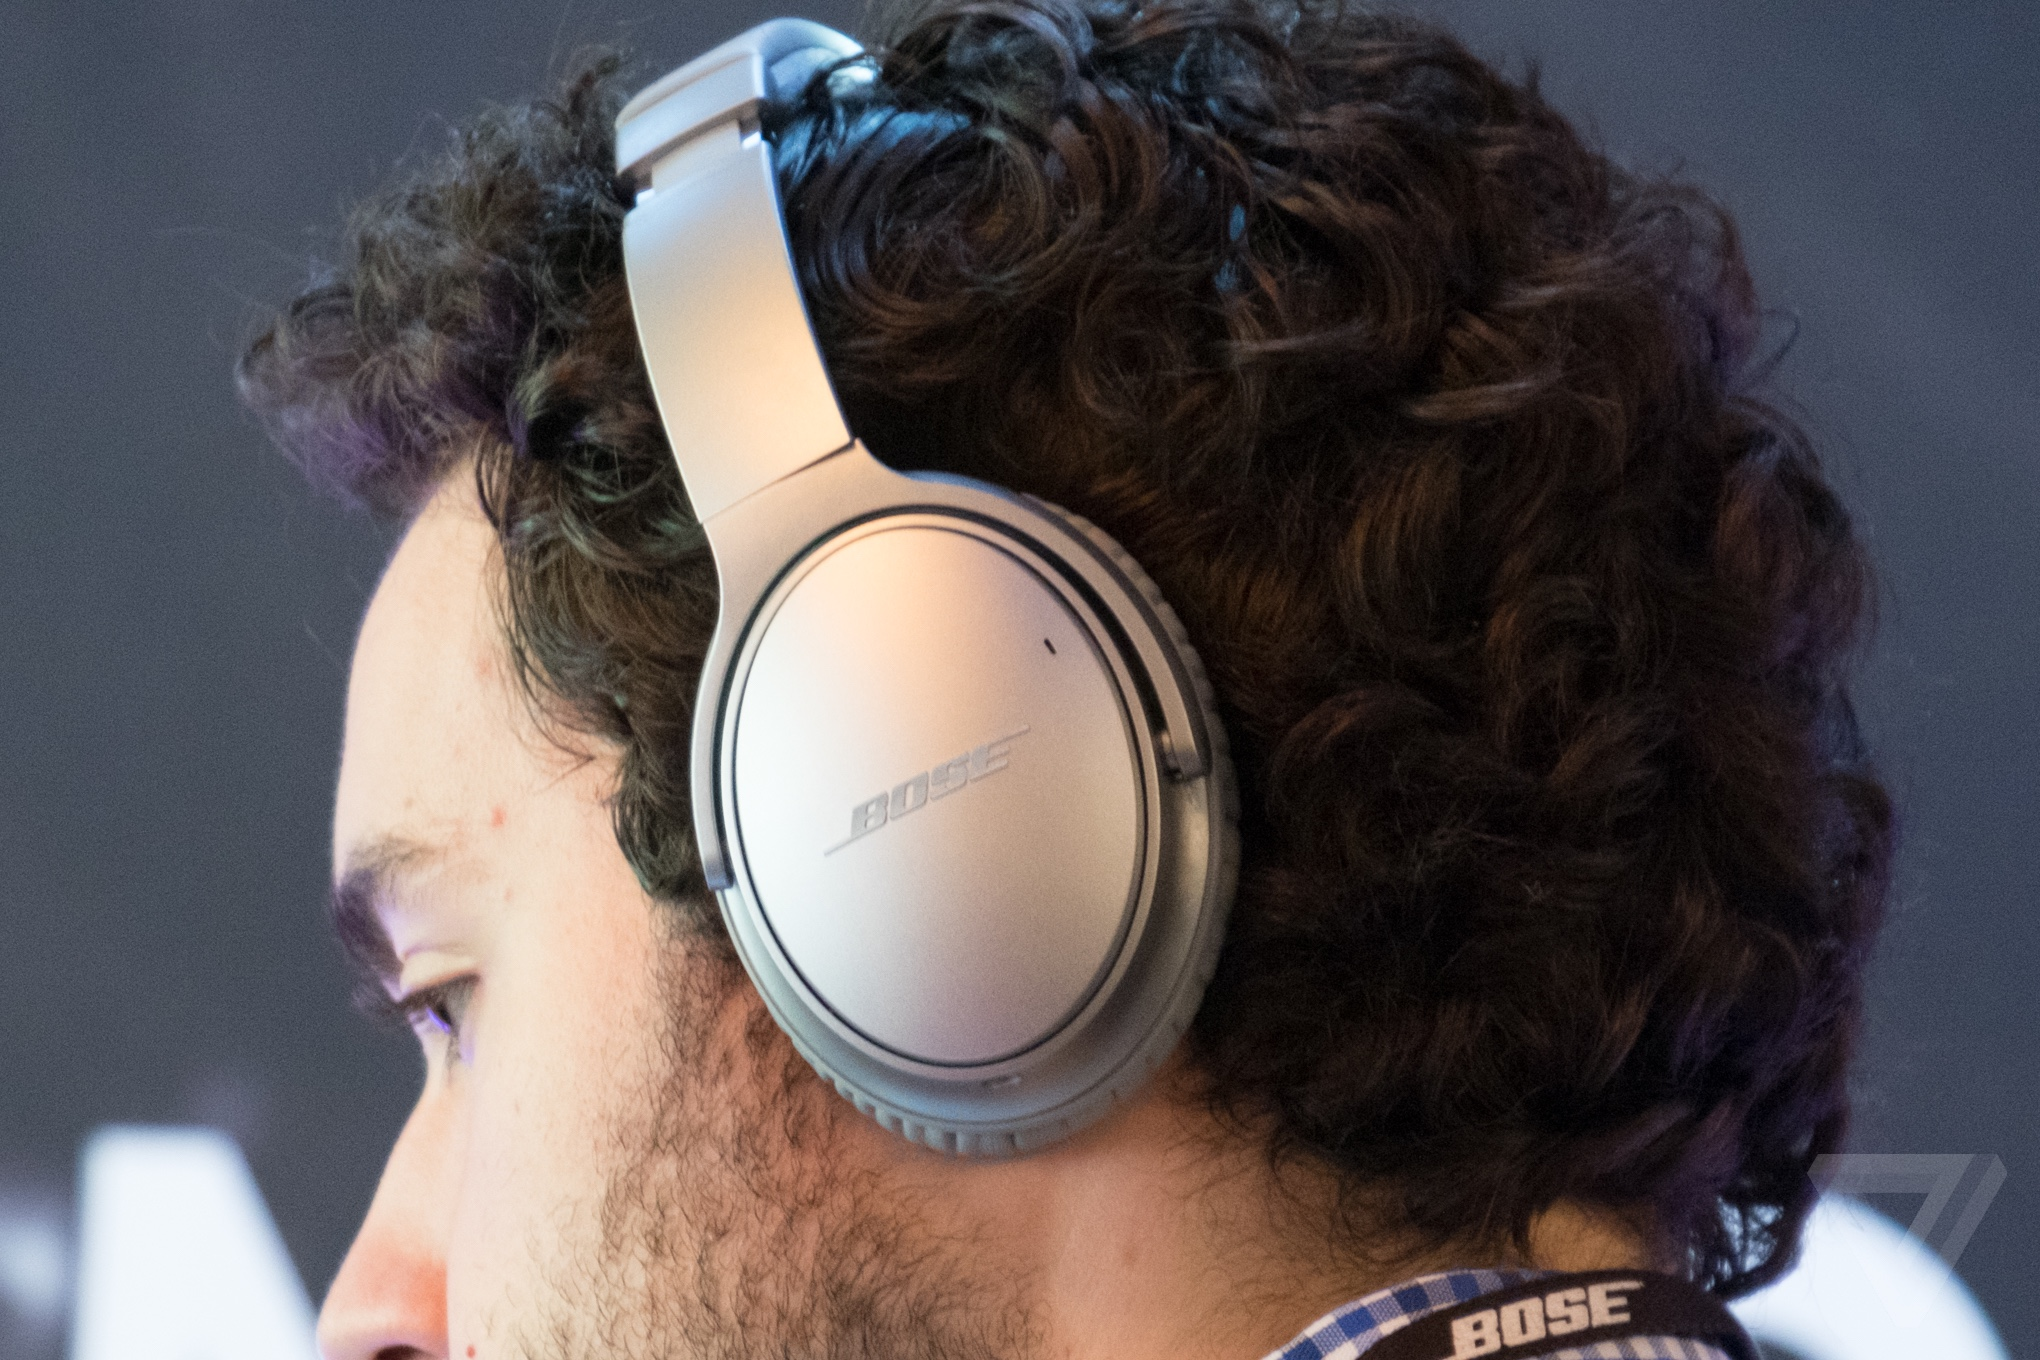 The Bose QC 35 headphones are fatally flawed, and no one believes me